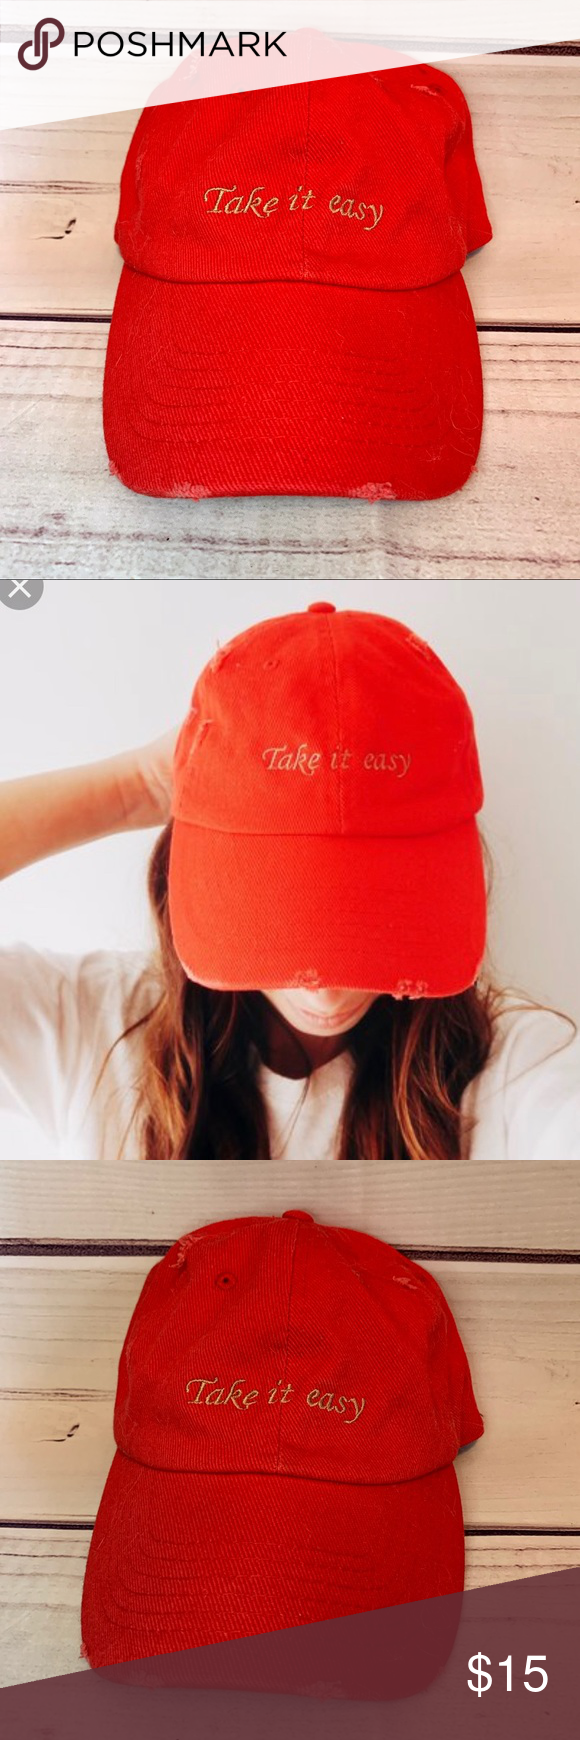 Urban Take It Easy Distressed Baseball Hat Dad Hats Baseball Hats Urban Outfitters Accessories